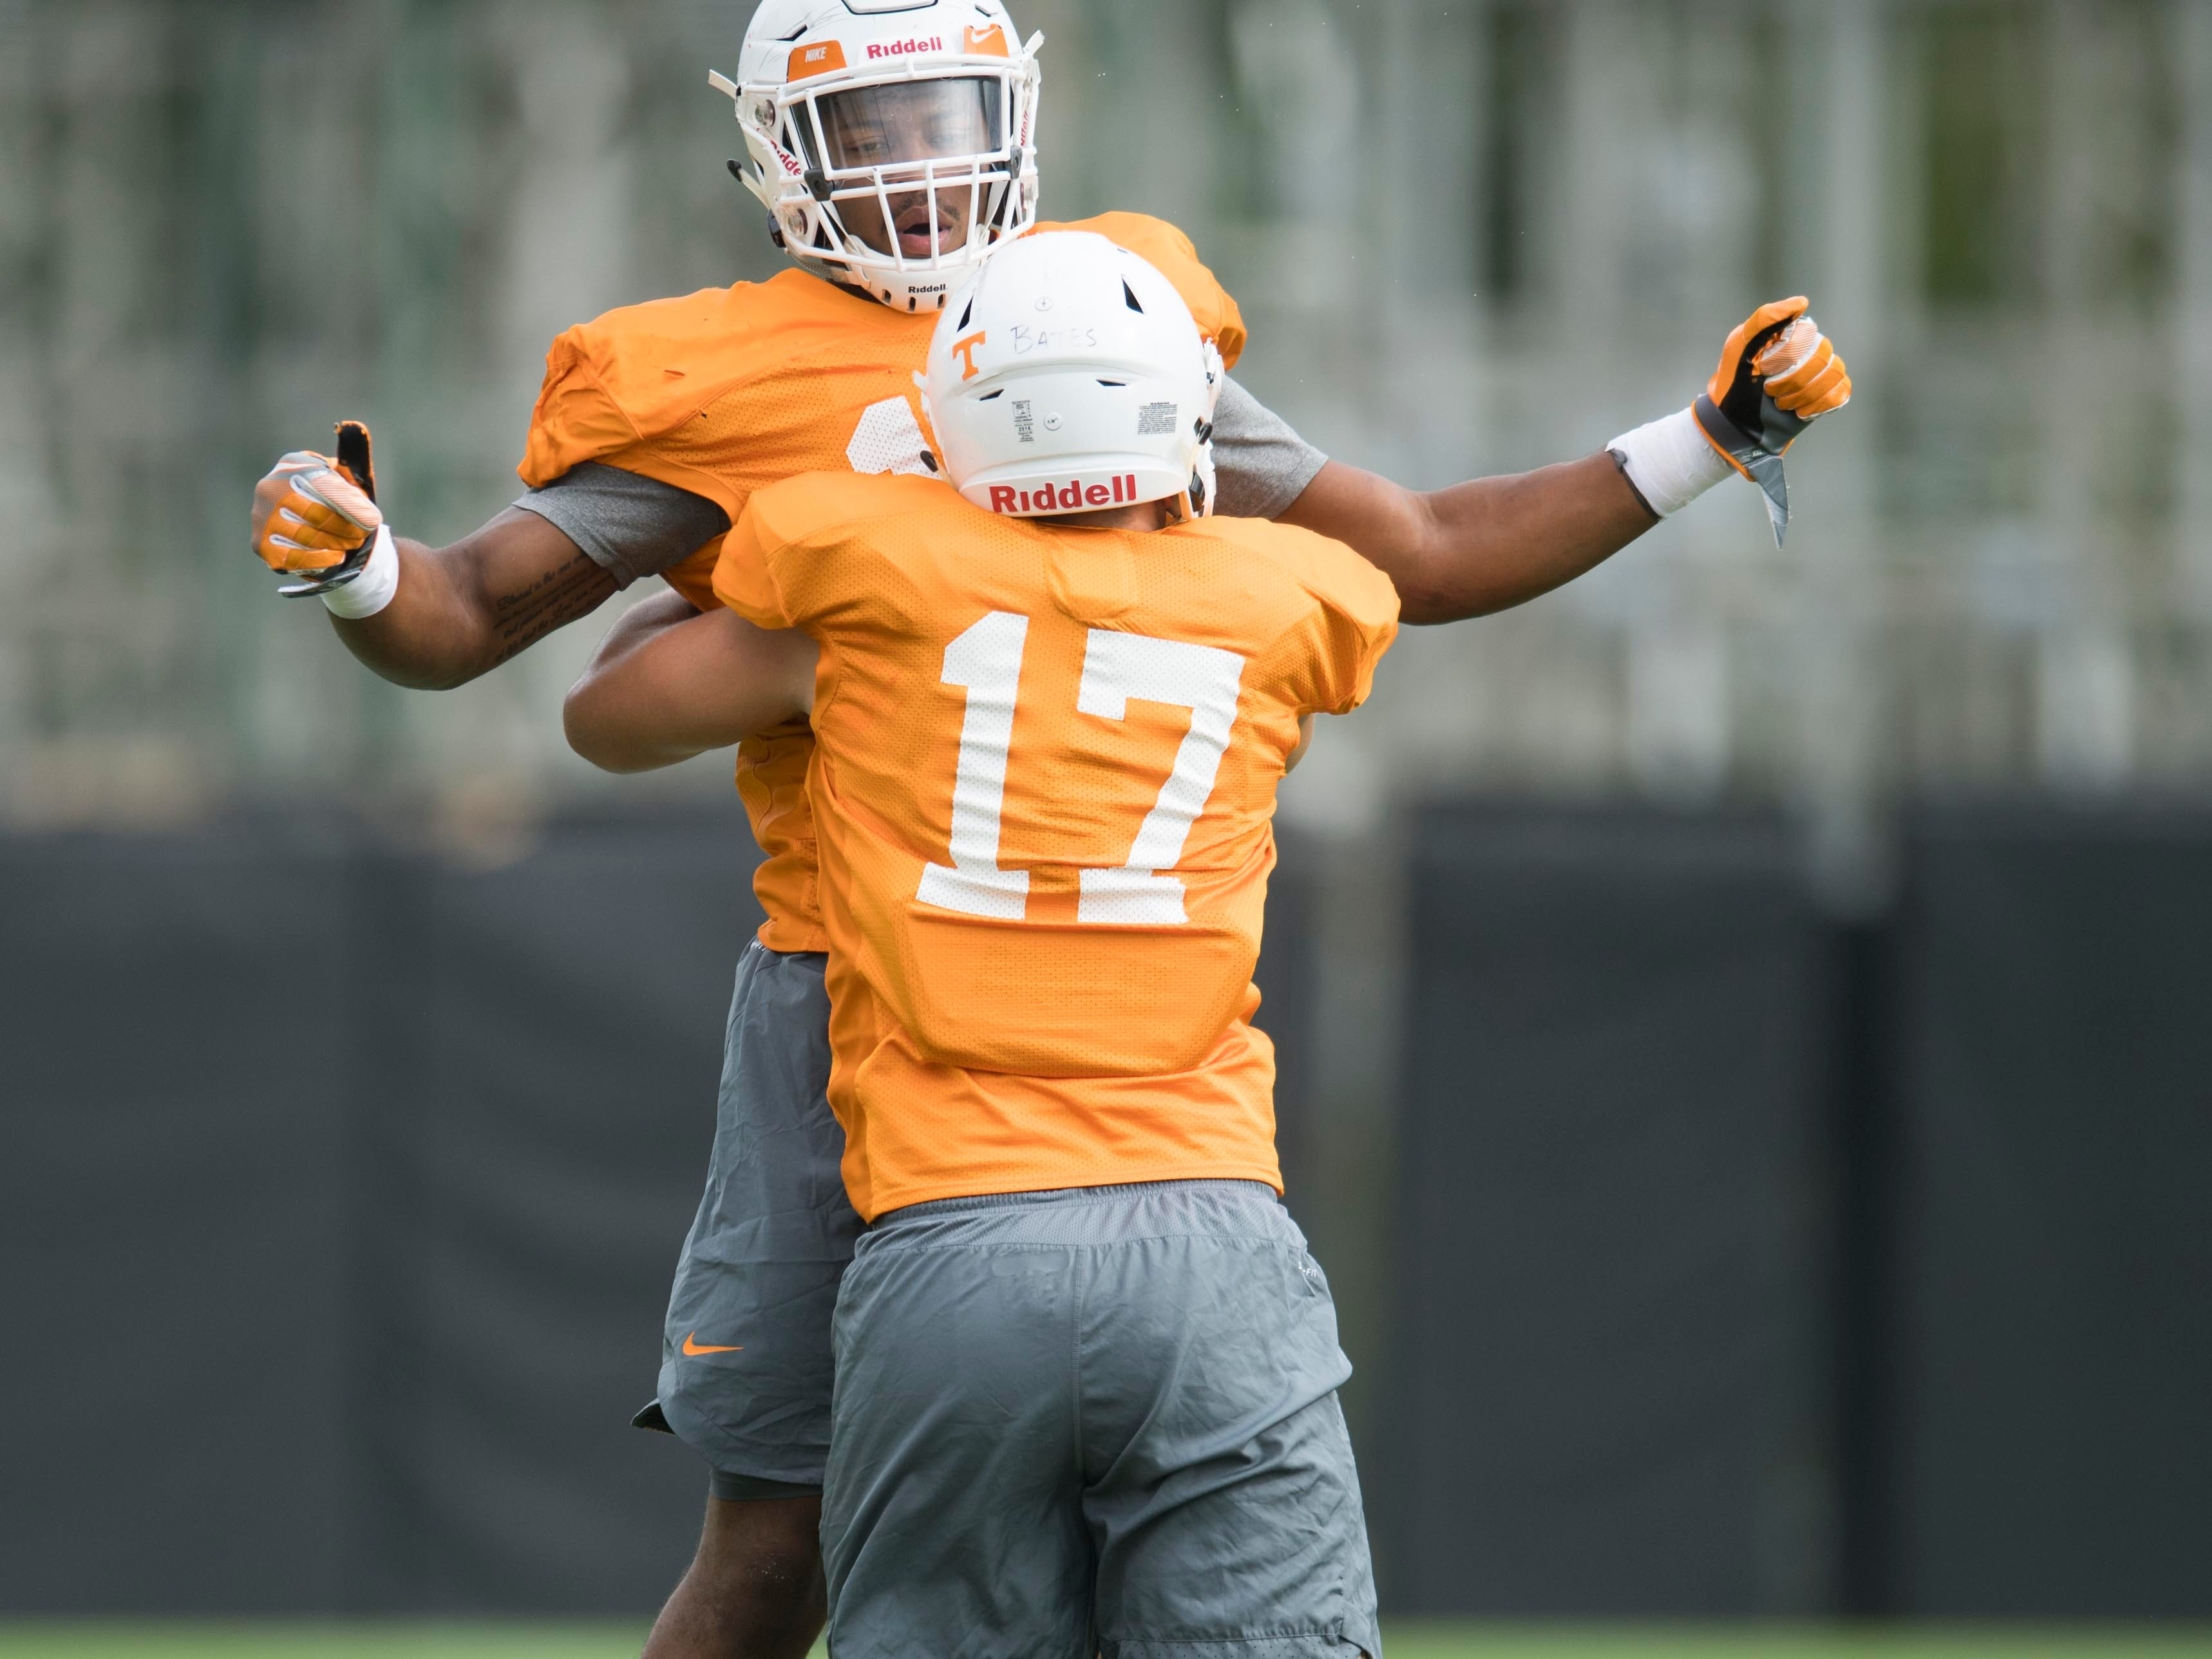 Tennessee linebackers Quart'e Sapp (14) and Dillon Bates during practice on Monday, September 10, 2018.